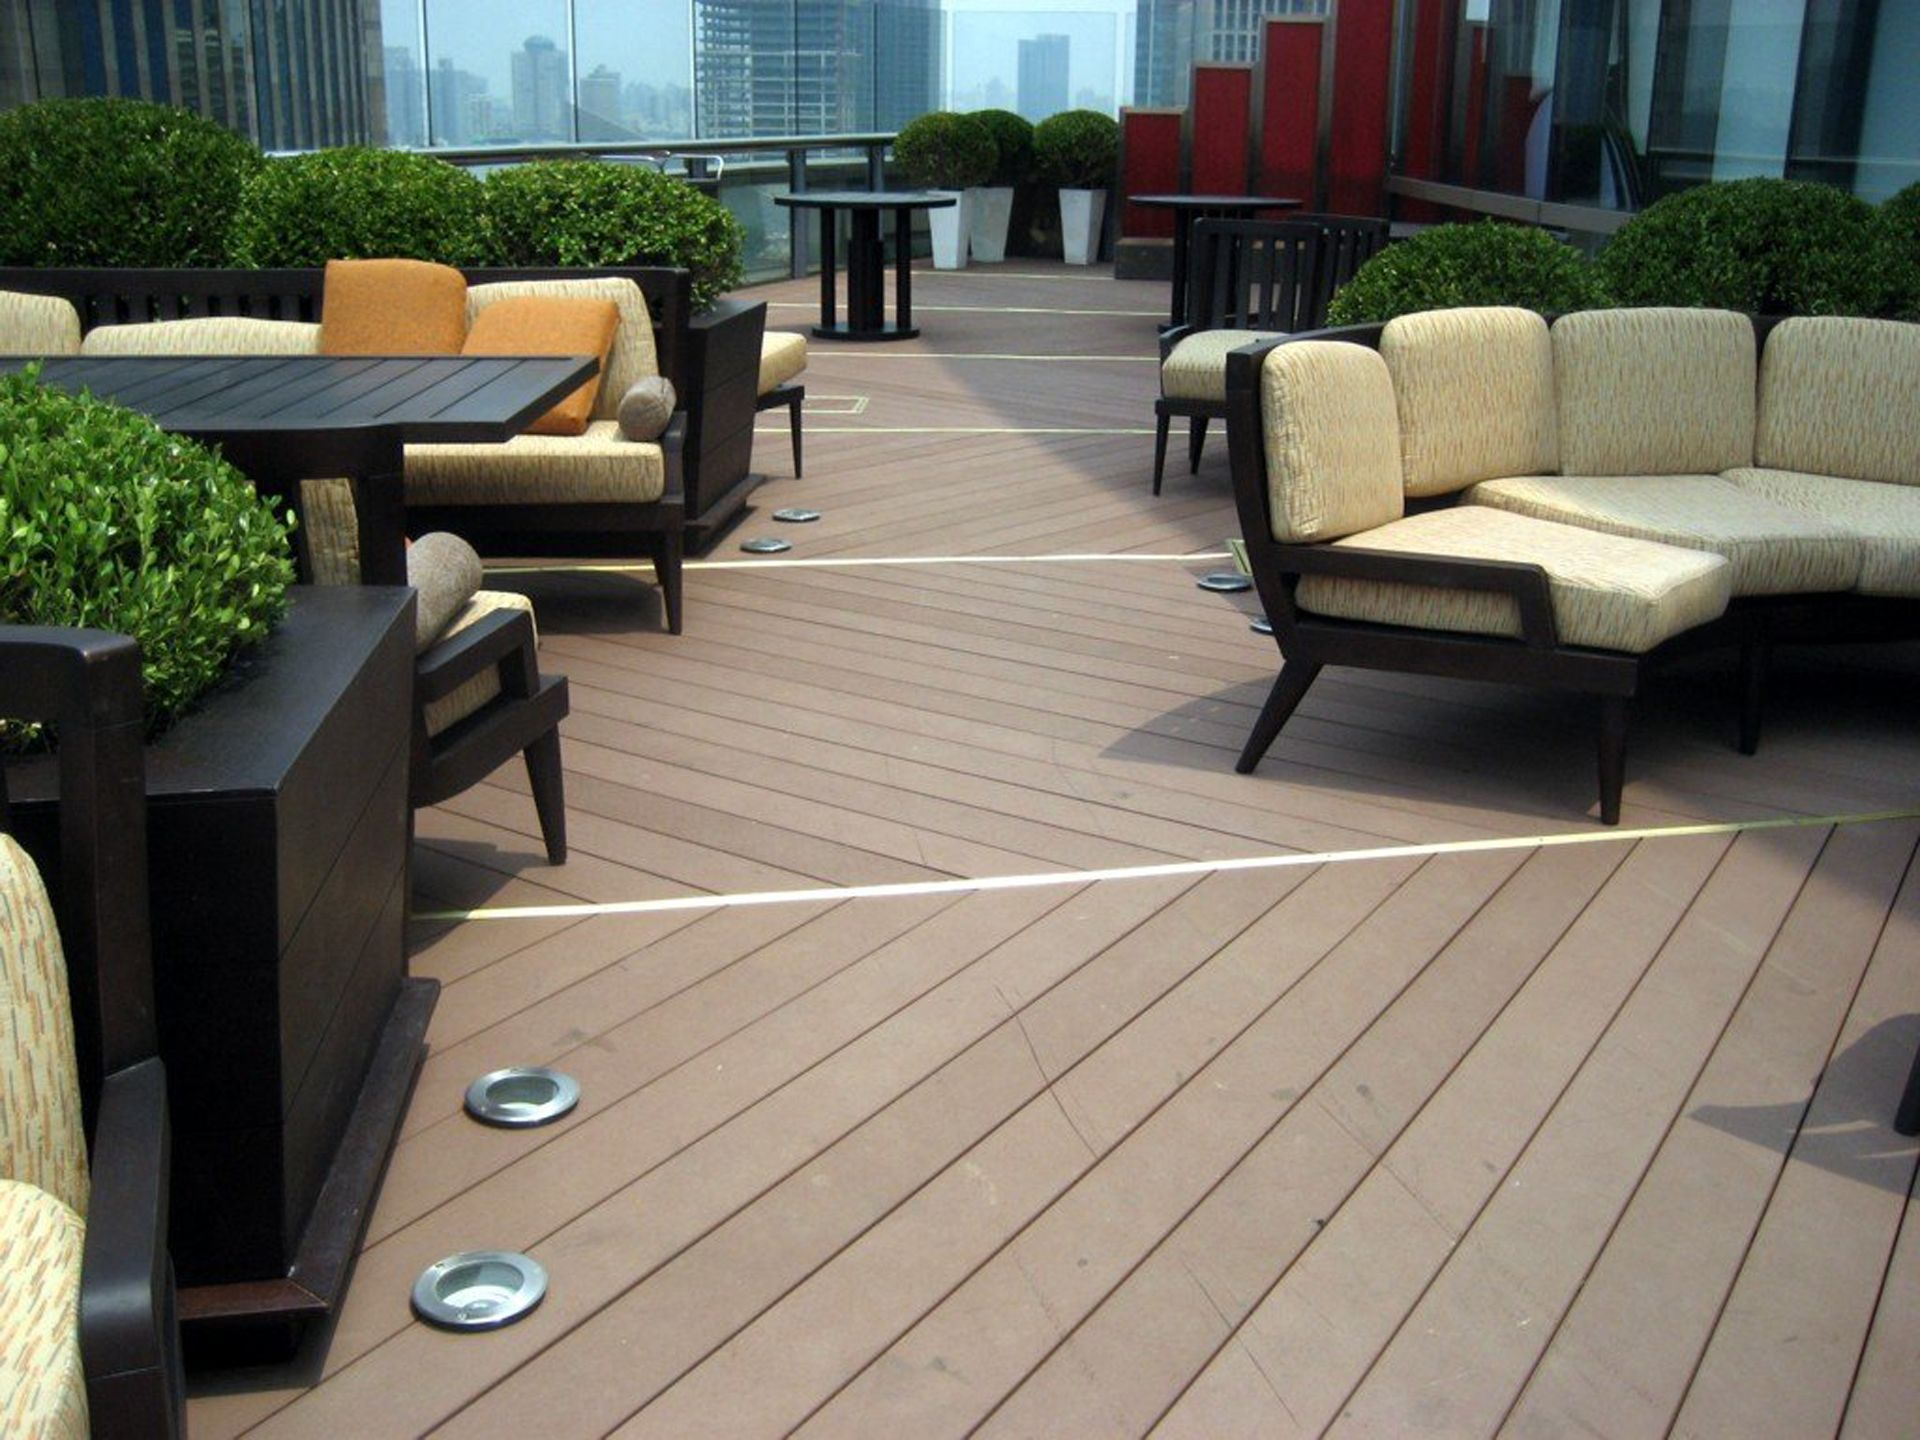 Plastic Decking Prices >> 12 2x6 Composite Decking Prices Wpc Decking Composite